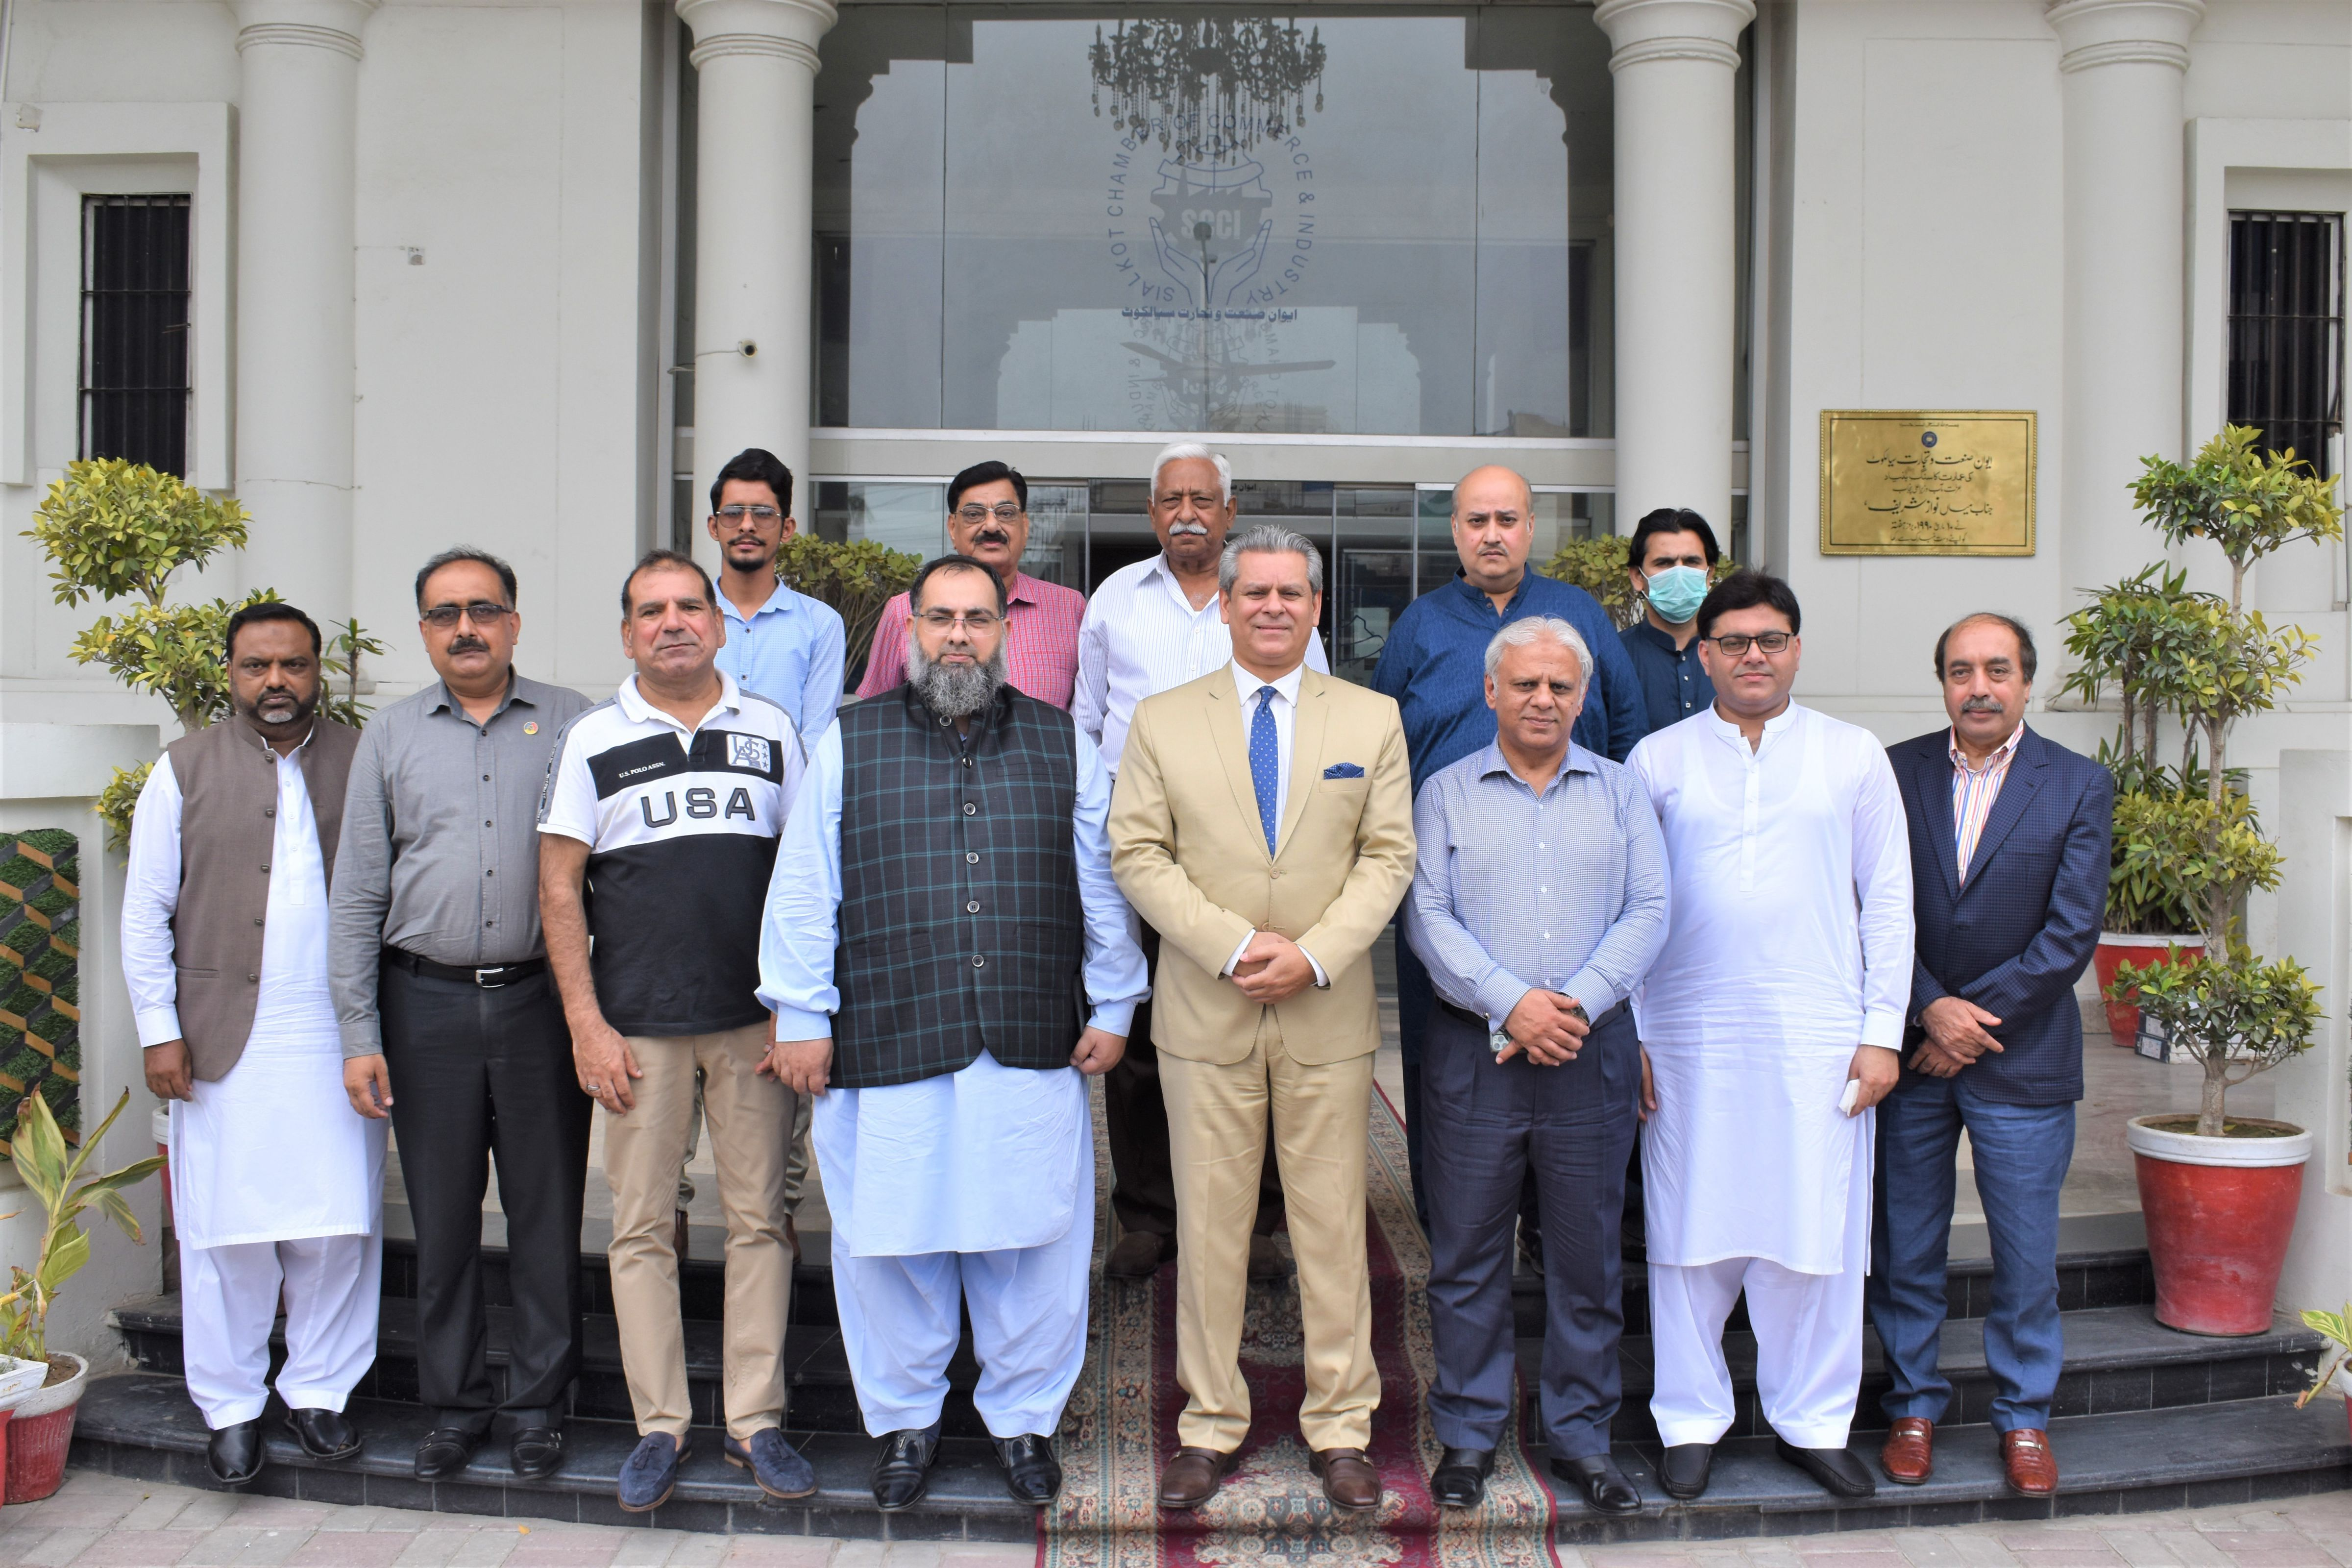 """On July 10, 2021, H. E. Mr. Hamid Asghar Khan, Ambassador of Pakistan designated to the Kingdom of Morocco and the Republic of Liberia visited Sialkot Chamber of Commerce and Industry.   H.E. Mr. Hamid Khan and Mr. Ijaz Khokar, Former Chairman, Pakistan Readymade Garments Manufacturers and Exporters Association (PRGMEA) was received by Mr. Qaiser Iqbal Baryar, President accompanied by Mr. Khuram Aslam, Senior Vice President, Mr. Ansar Aziz Puri, Vice President and Members of Executive Committee SCCI.   During the meeting, H.E. appreciated the role of Sialkot in the Economic Development of the Country and having maximum share in the total export of Pakistan. Mr. Ambassador assured his full facilitations and availability in providing a display platform for exporters of Sialkot to showcase their products in prominent markets in Rabat and Marrakesh and gain global recognition. President SCCI appreciated the proposal of the Ambassador and requested H.E. Mr. Hamid A. Khan to form a committee """"LOOK AFRICA"""" for promotion of trade in African countries using Made in Sialkot products."""